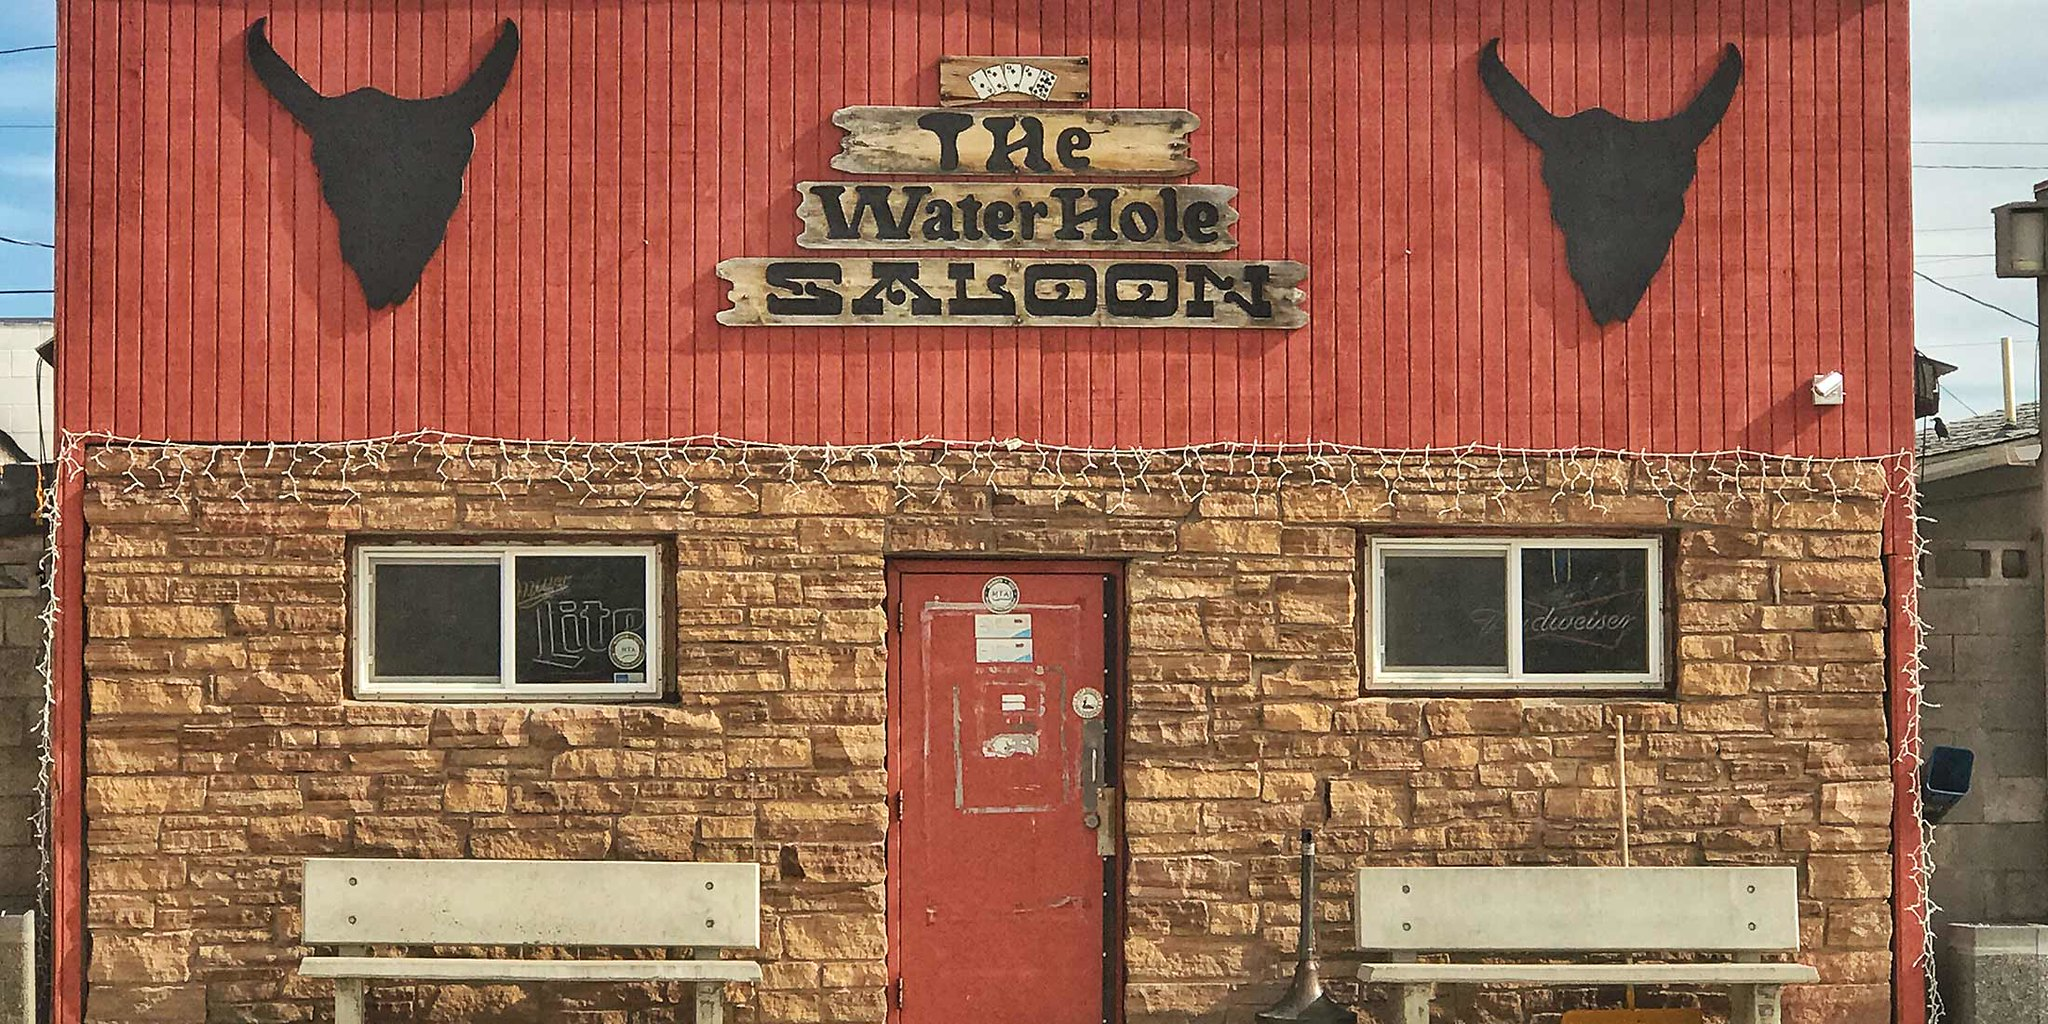 The Waterhole Saloon is located in Stanford, Montana on Highway 87 in Judith Basin County.